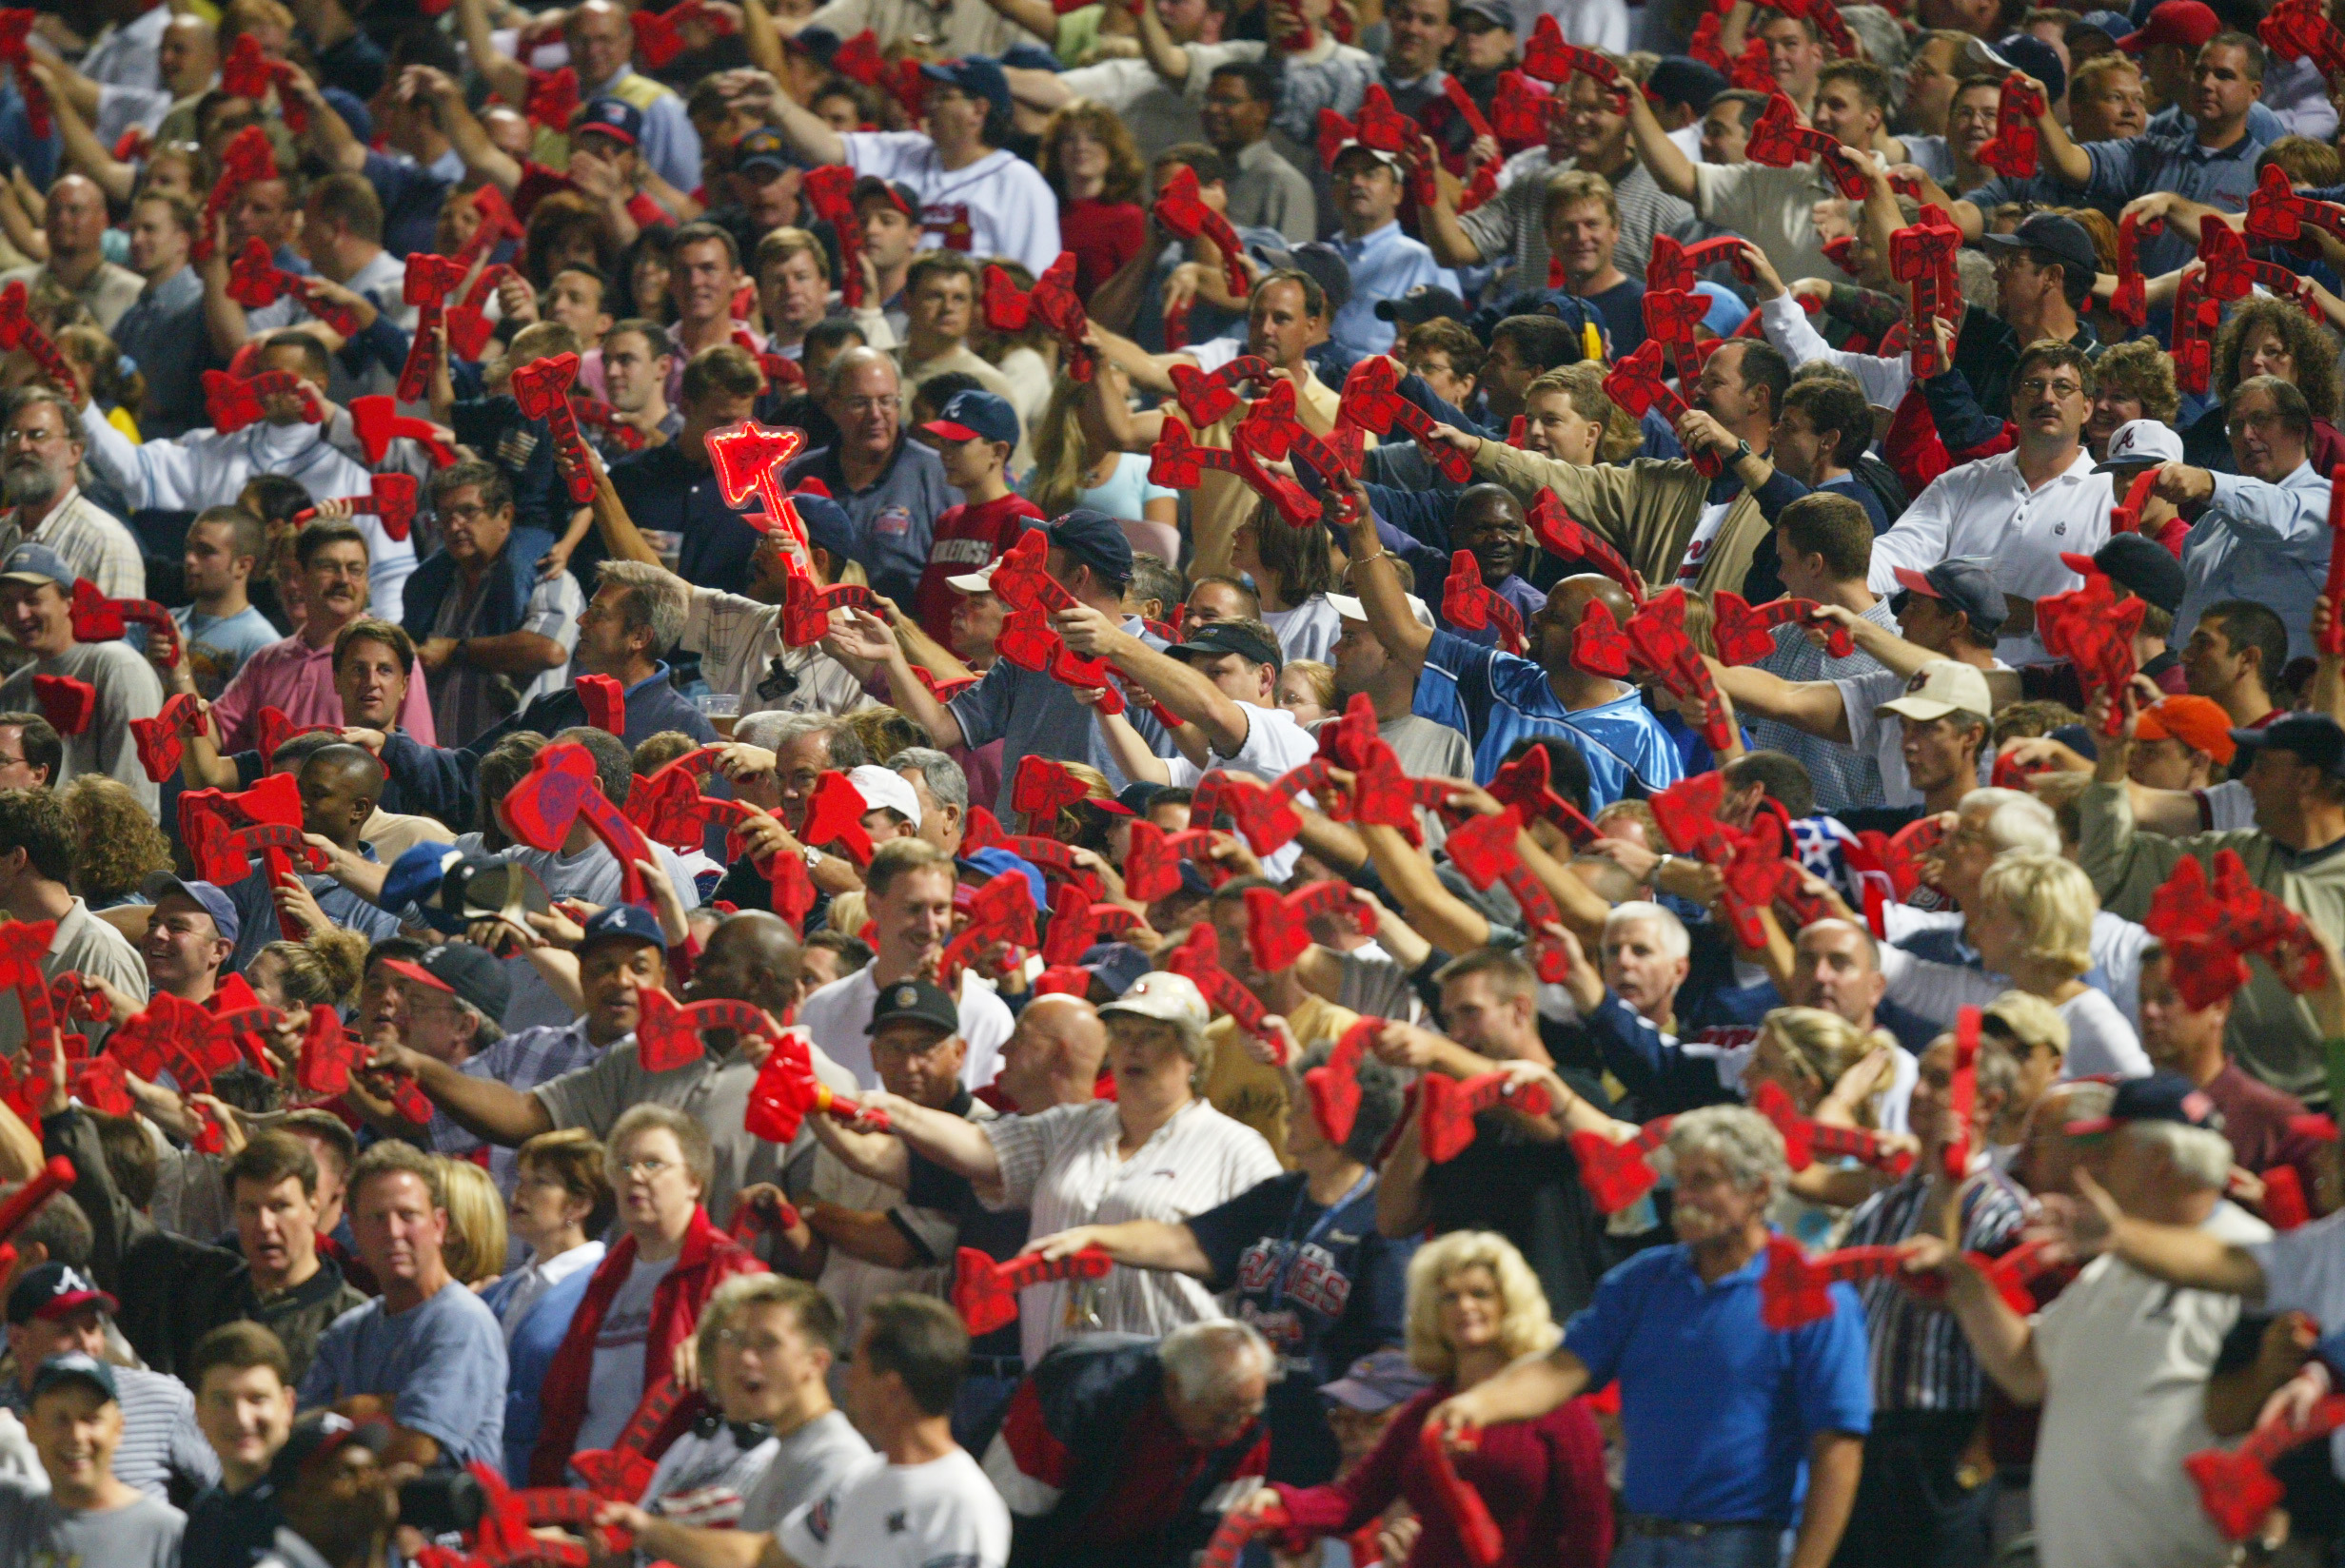 ATLANTA - OCTOBER 7:  Fans of the Atlanta Braves do the tomahawk chop during game five of the National League Division Series against the San Francisco Giants on October 7, 2002  at Turner Field in Atlanta, Georgia.  The Giants won 3-1.  (Photo by Jamie S